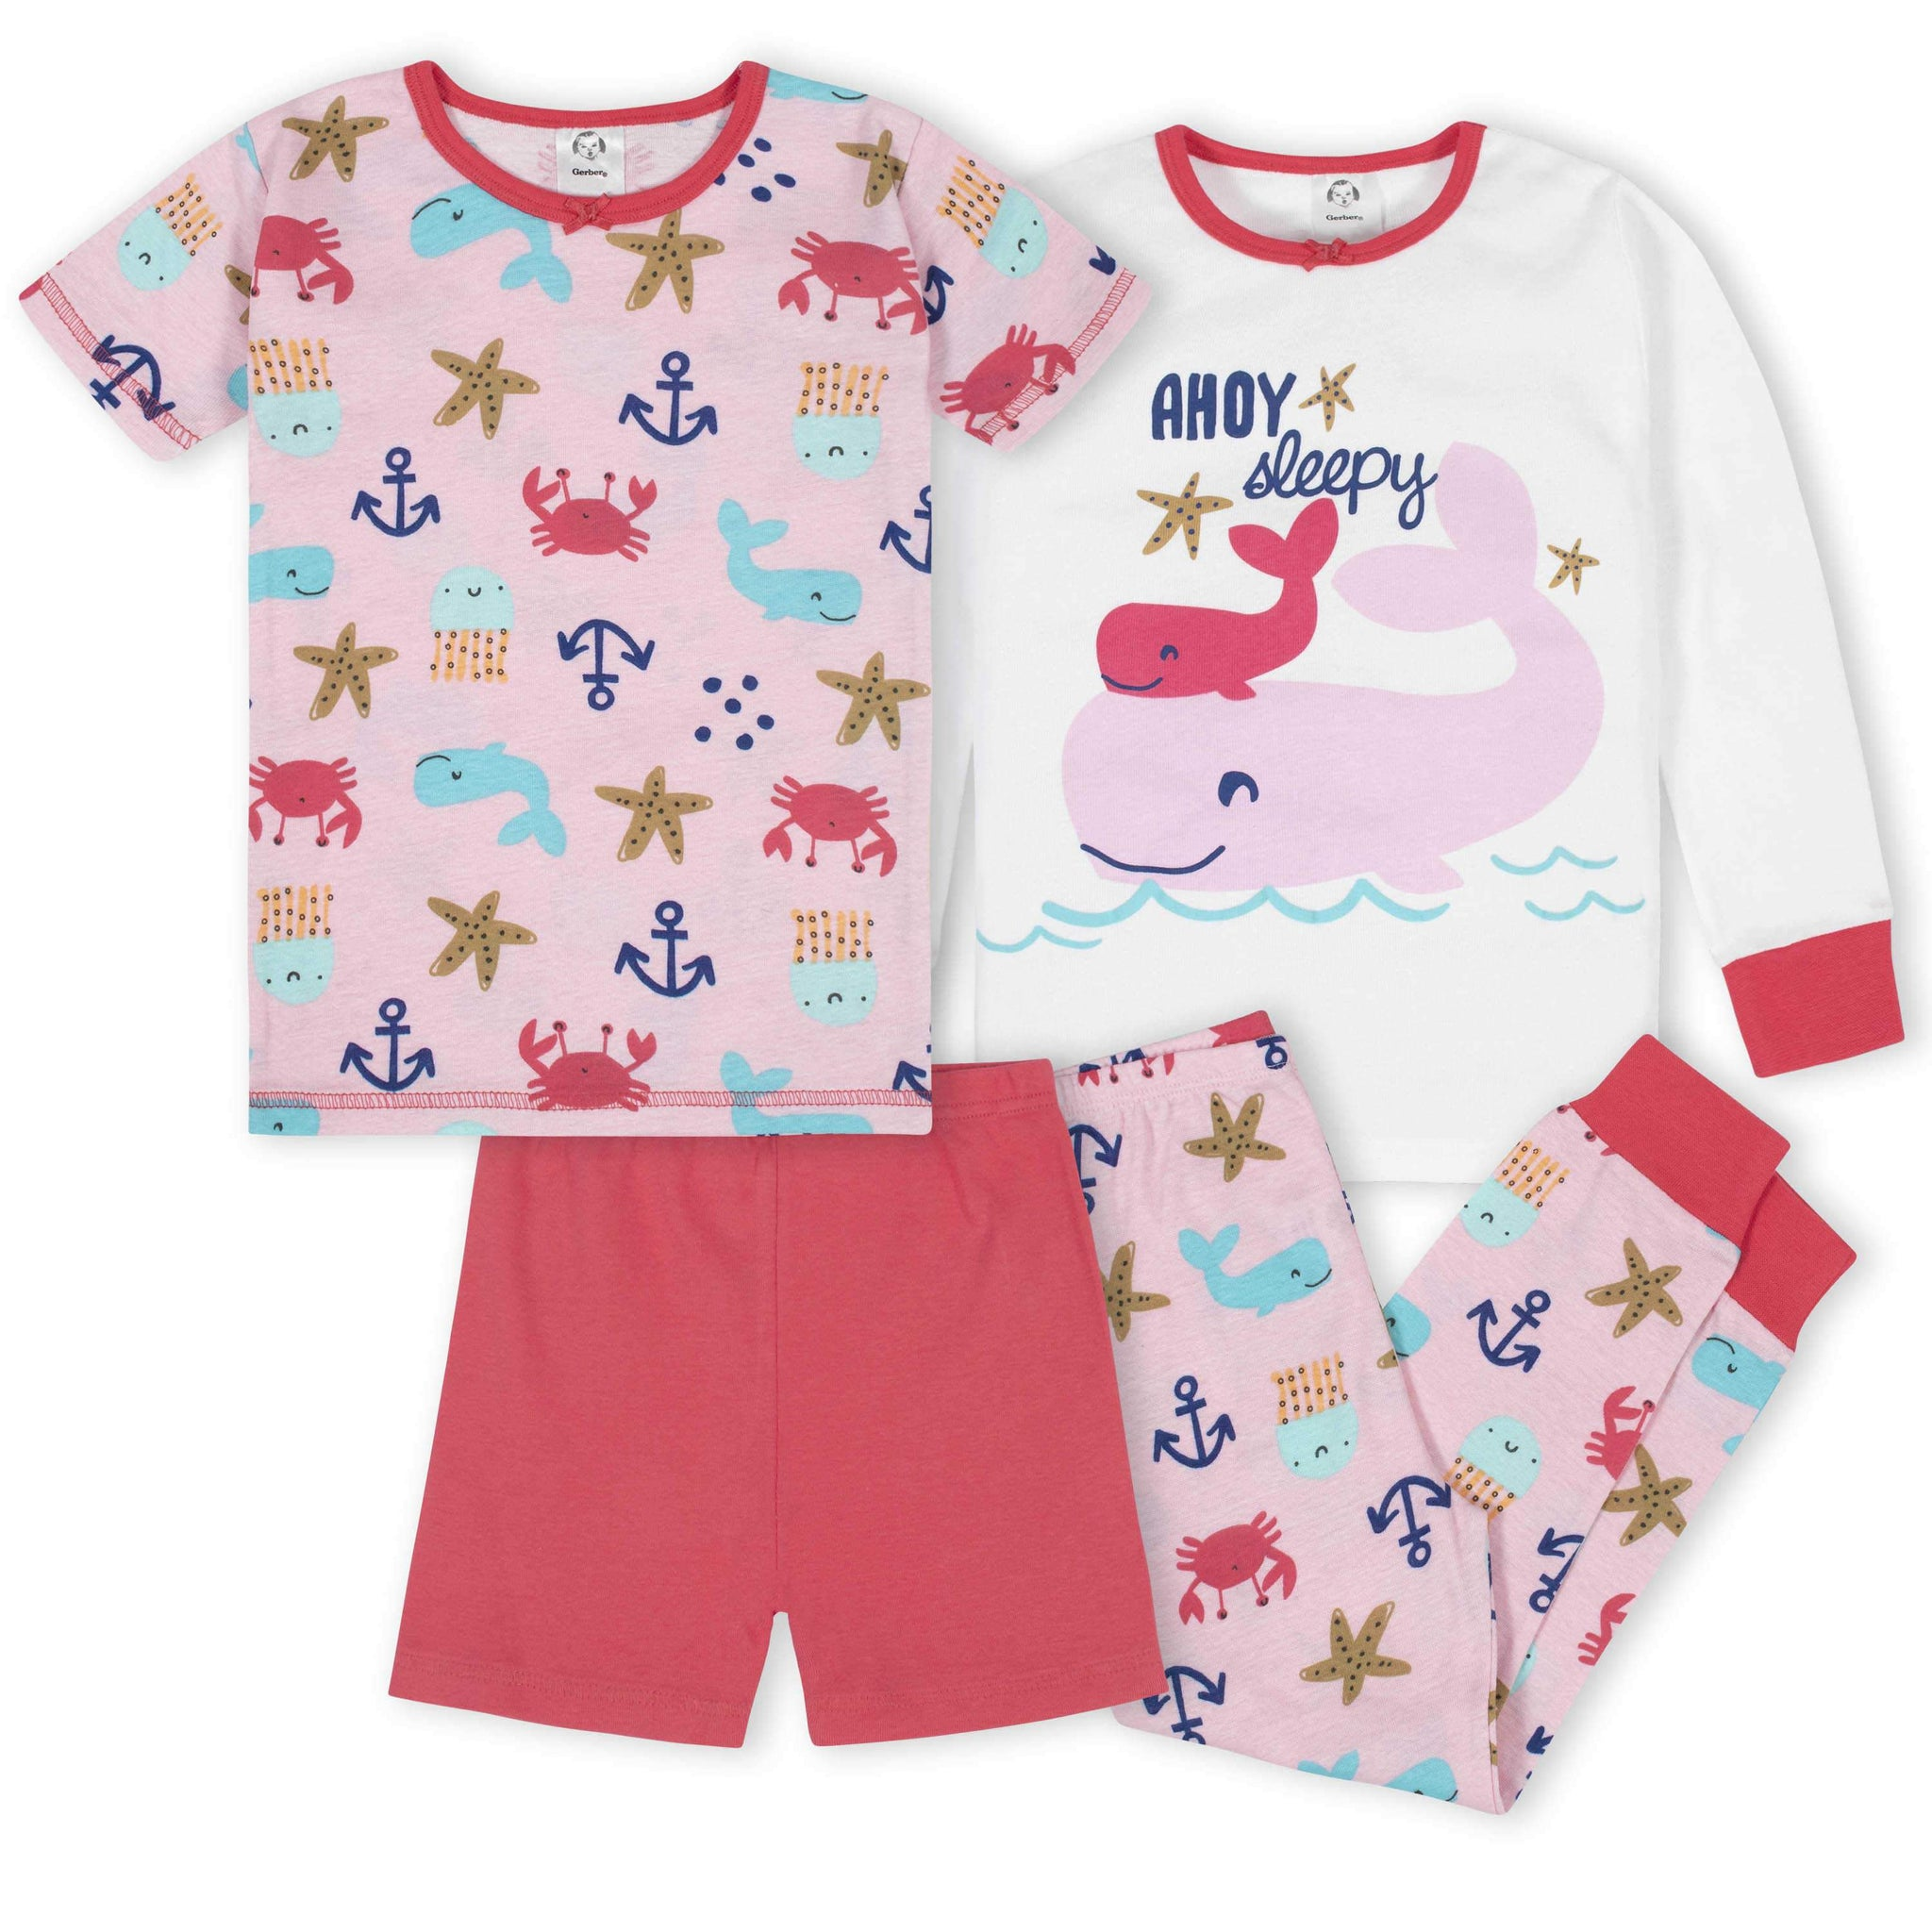 4-Piece Toddler Girls Mermaid Pajama Set